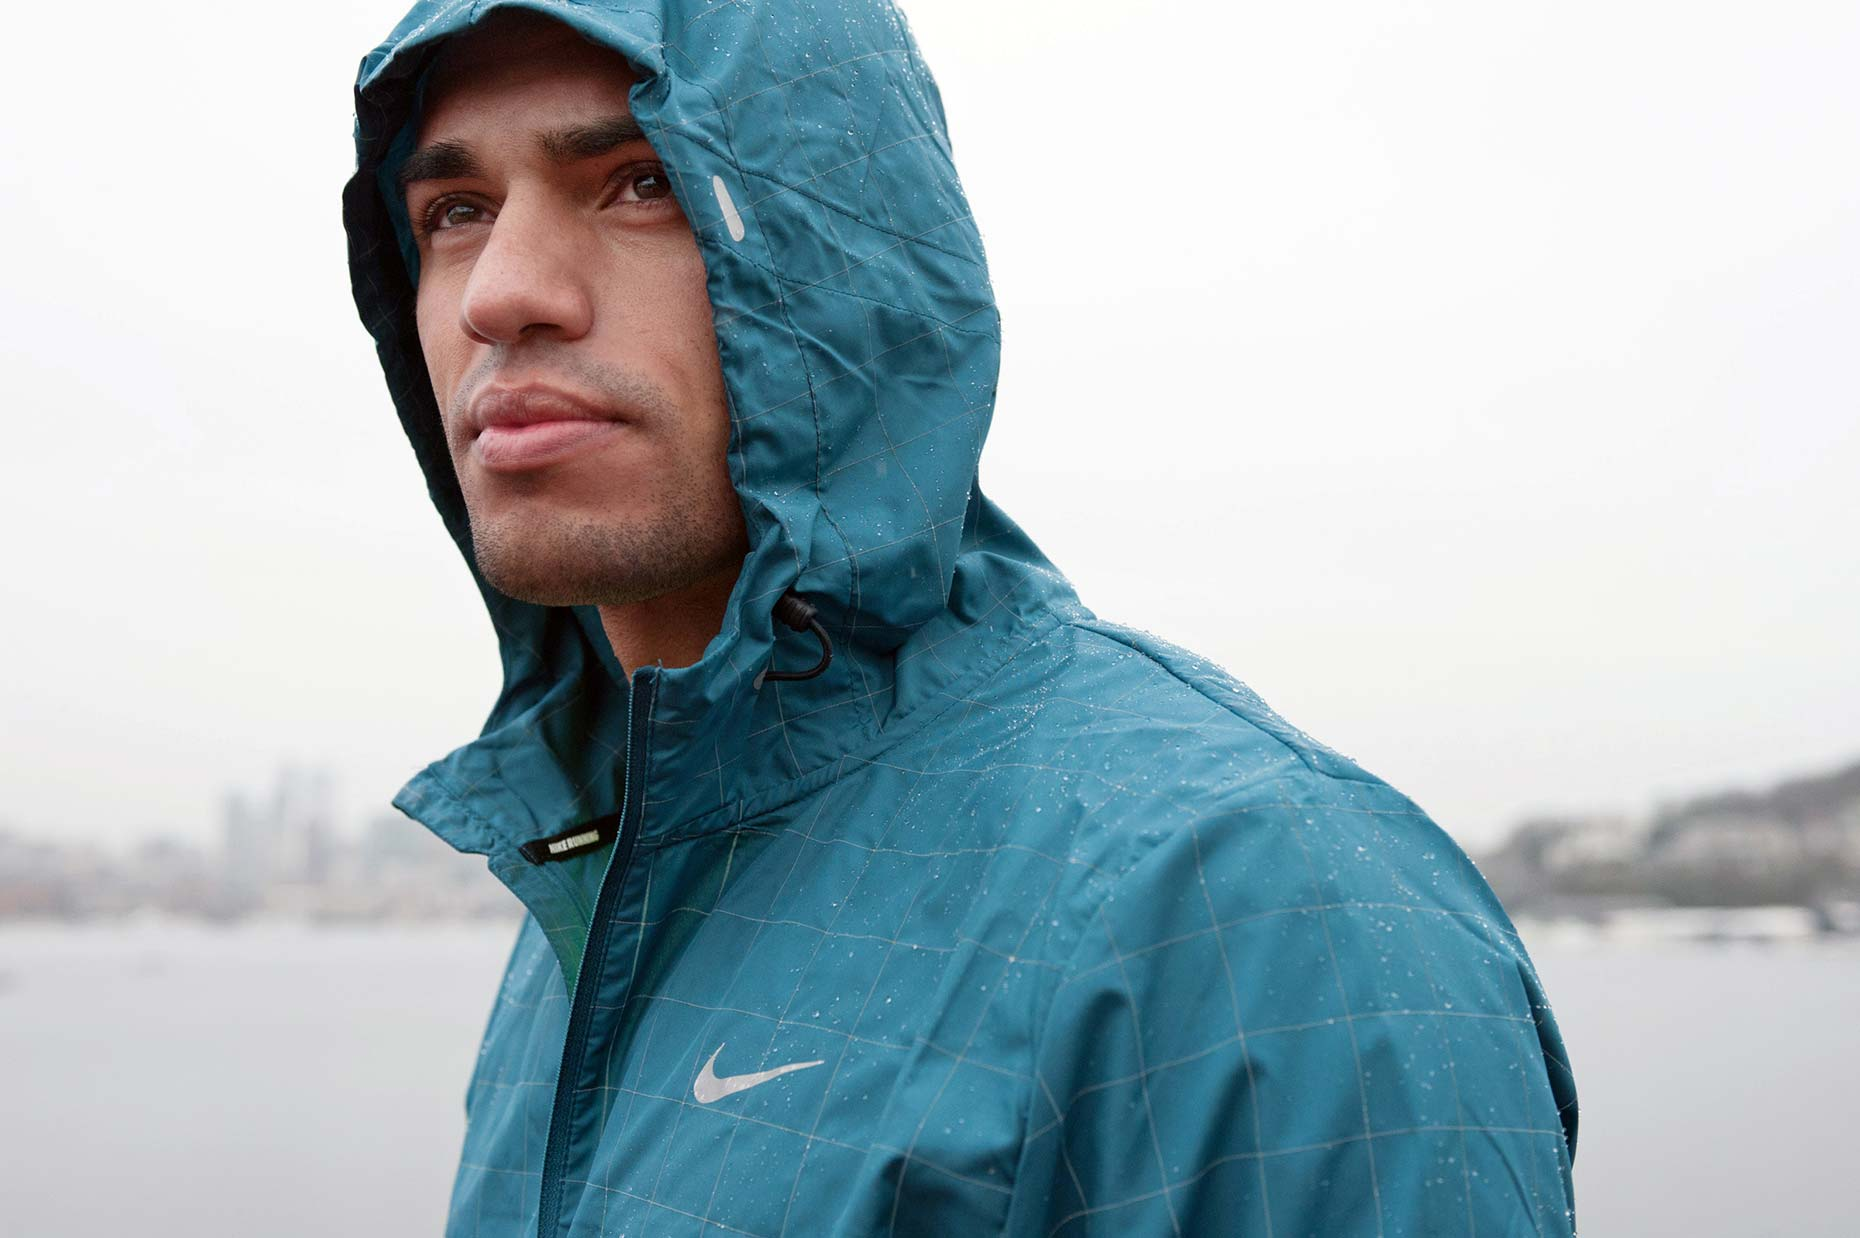 Ian-Coble-Running-Fitness-Health-Nike-Seattle-1